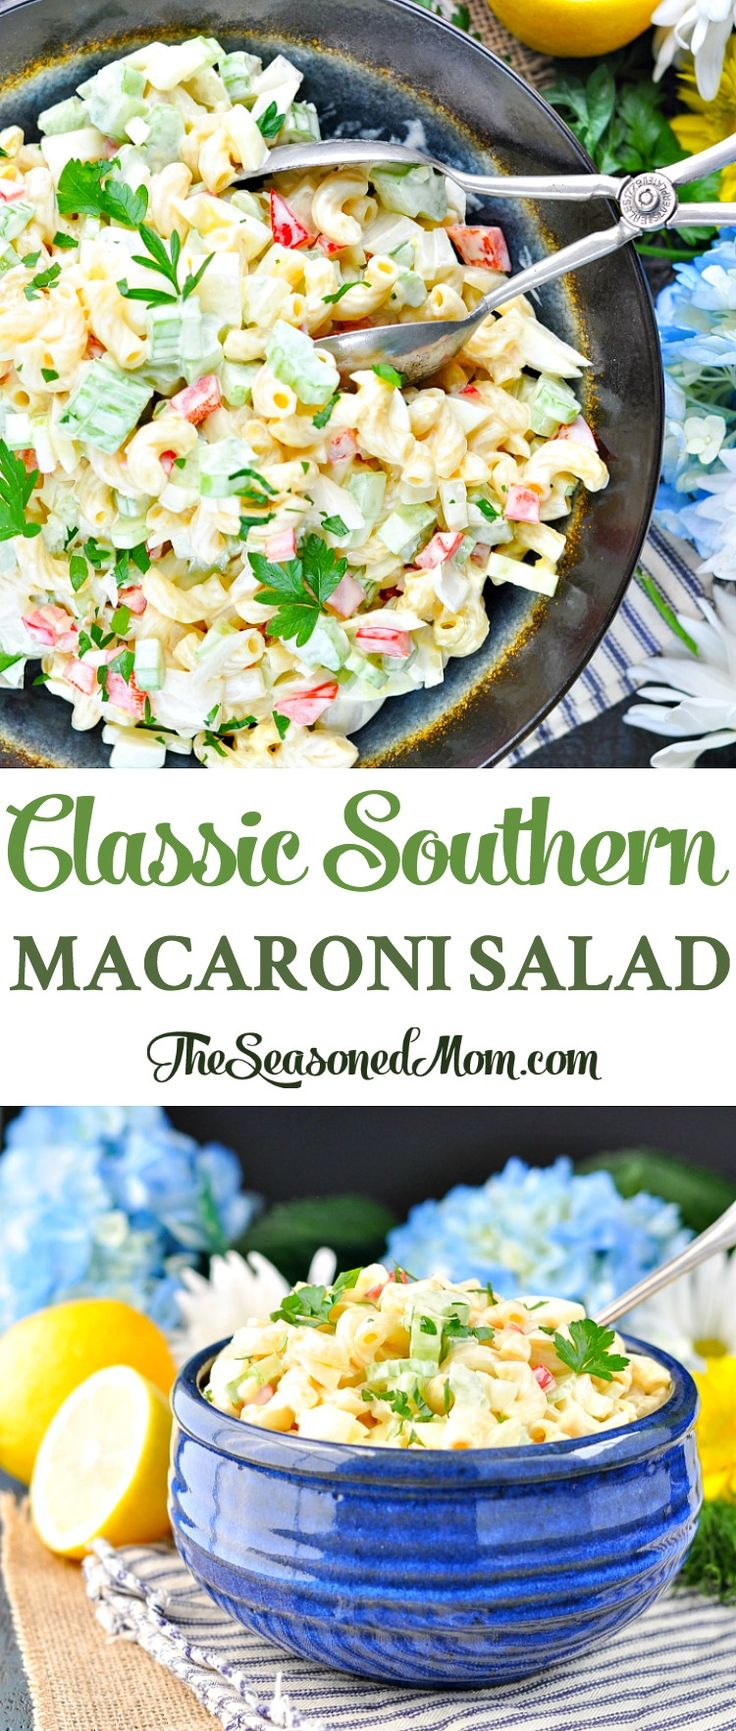 Classic Southern Macaroni Salad Recipe | Pasta Salad Recipes | Easy Side Dishes | Sides | Side Dishes for BBQ | Easy Recipes | Pasta Recipes | Potluck Recipes | Potluck Dishes | Potluck Ideas | Picnic Food | Cookout Side Dishes